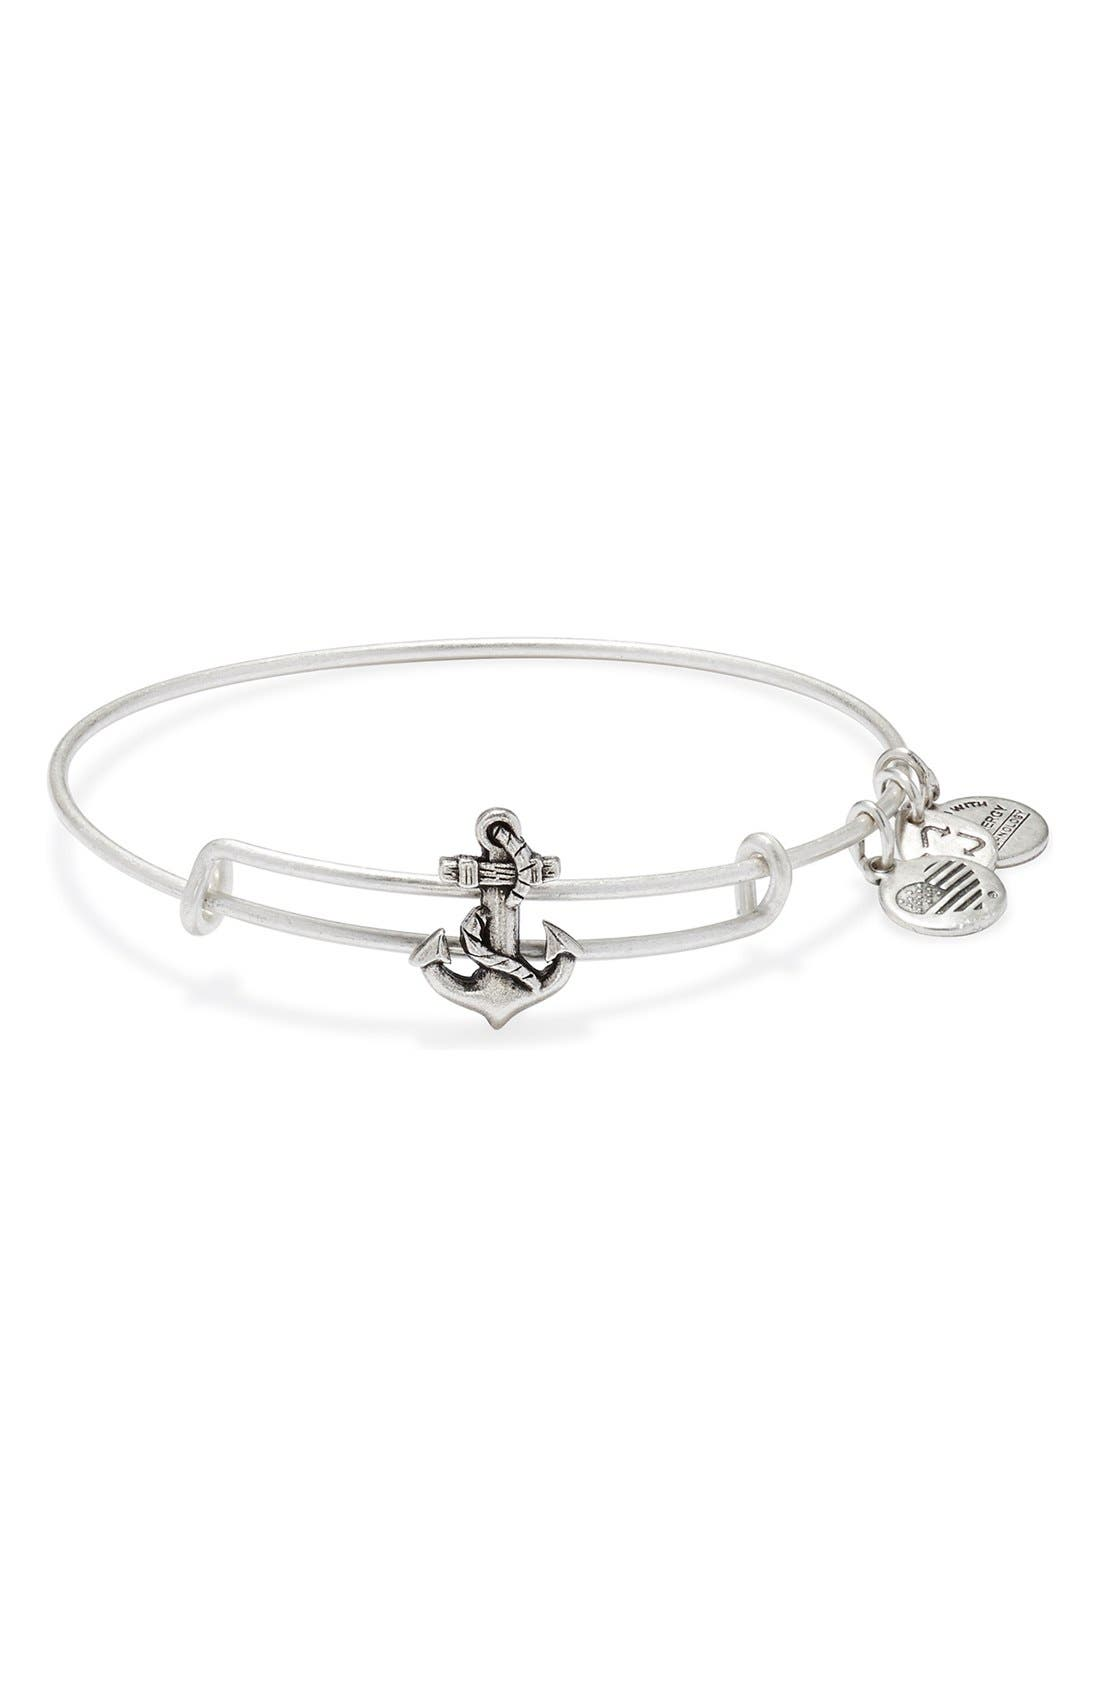 Main Image - Alex and Ani Expandable Anchor Bangle